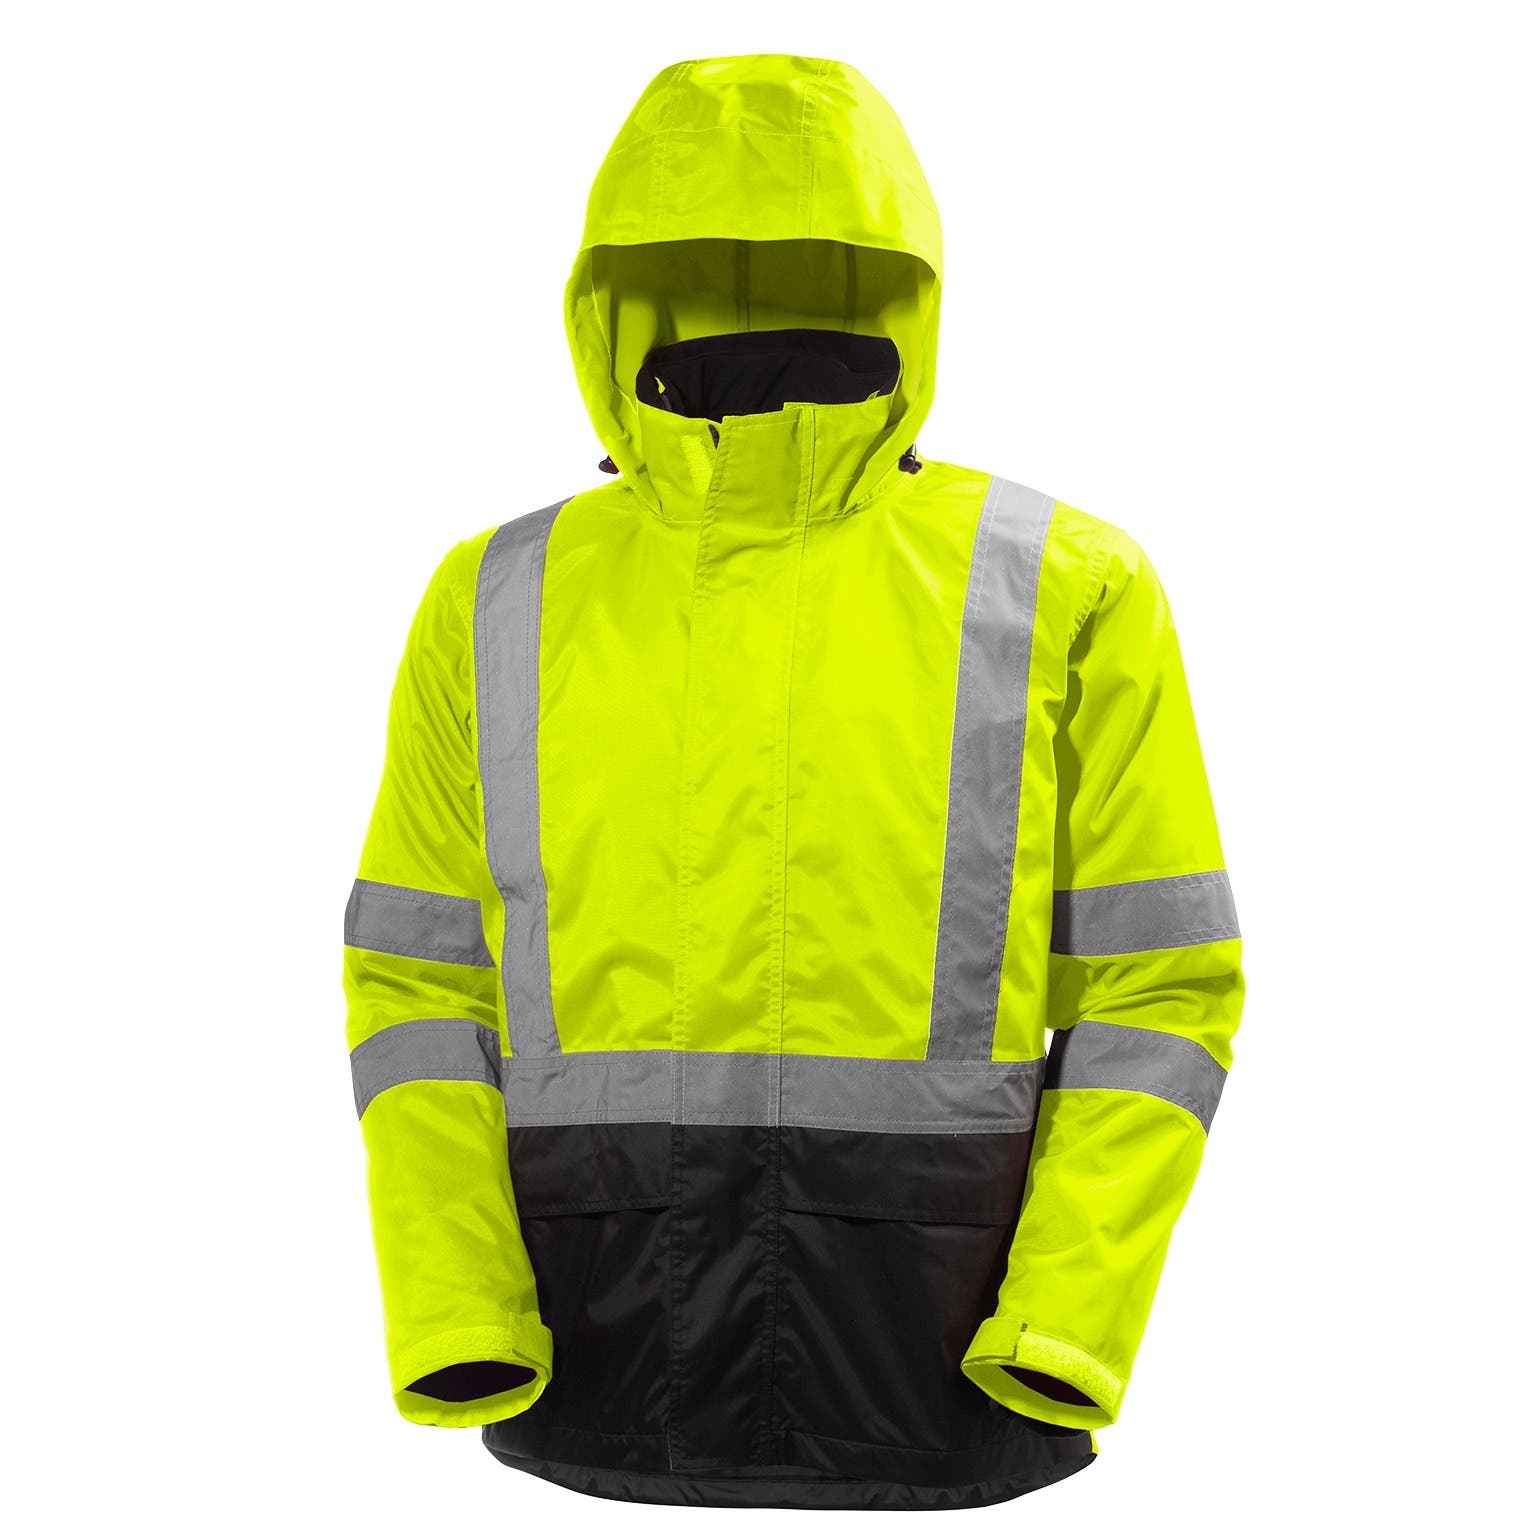 Helly Hansen Men's Alta Hi Vis Class 3 Shell Jacket in HV Yellow/Charcoal from the front